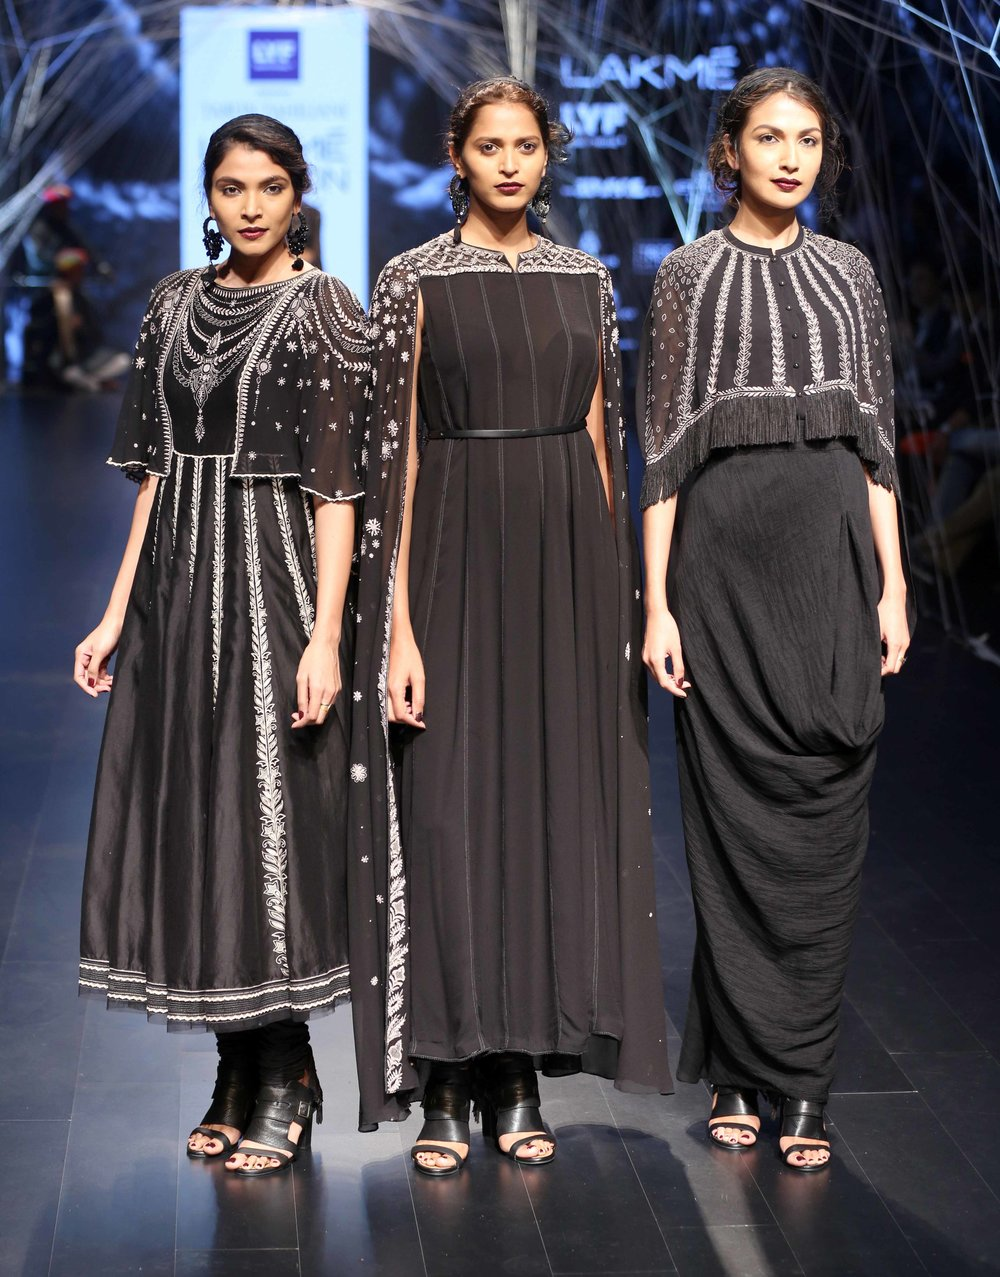 Models walk for Tarun Tahiliani at Lakme Fashion Week Winter Festive 201....jpg